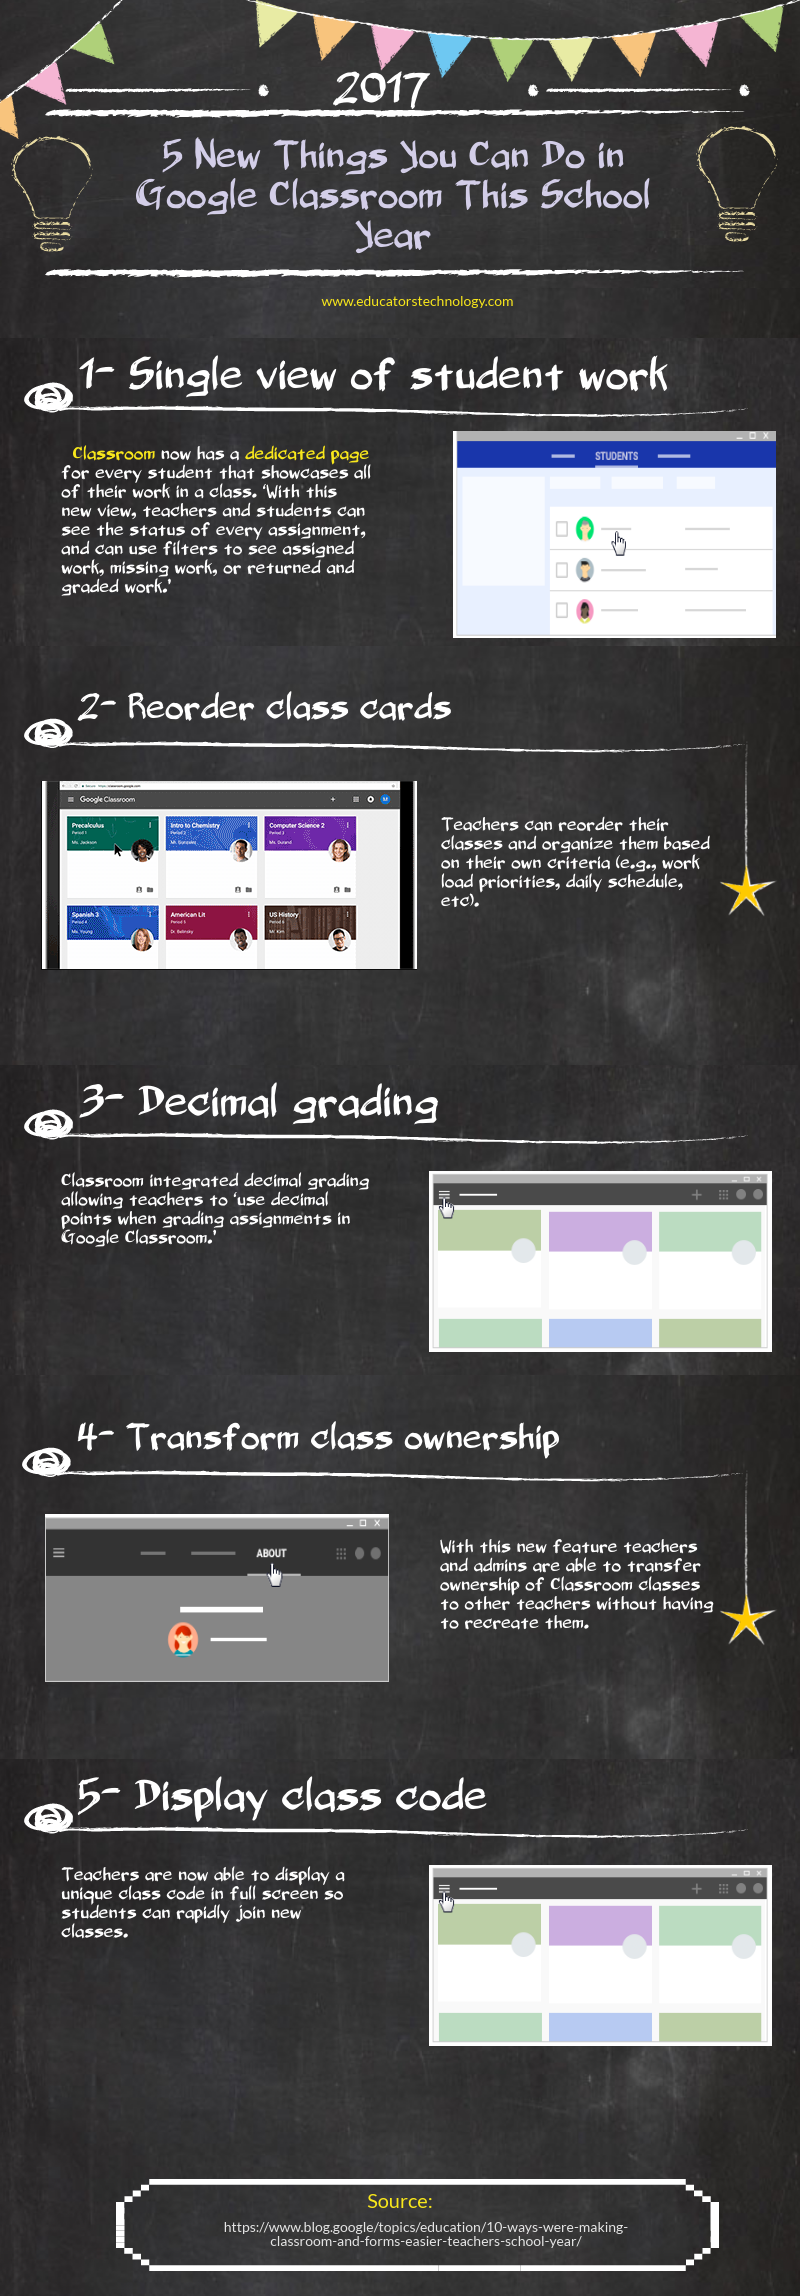 5 New Things You Can Do in Google Classroom This School Year ...